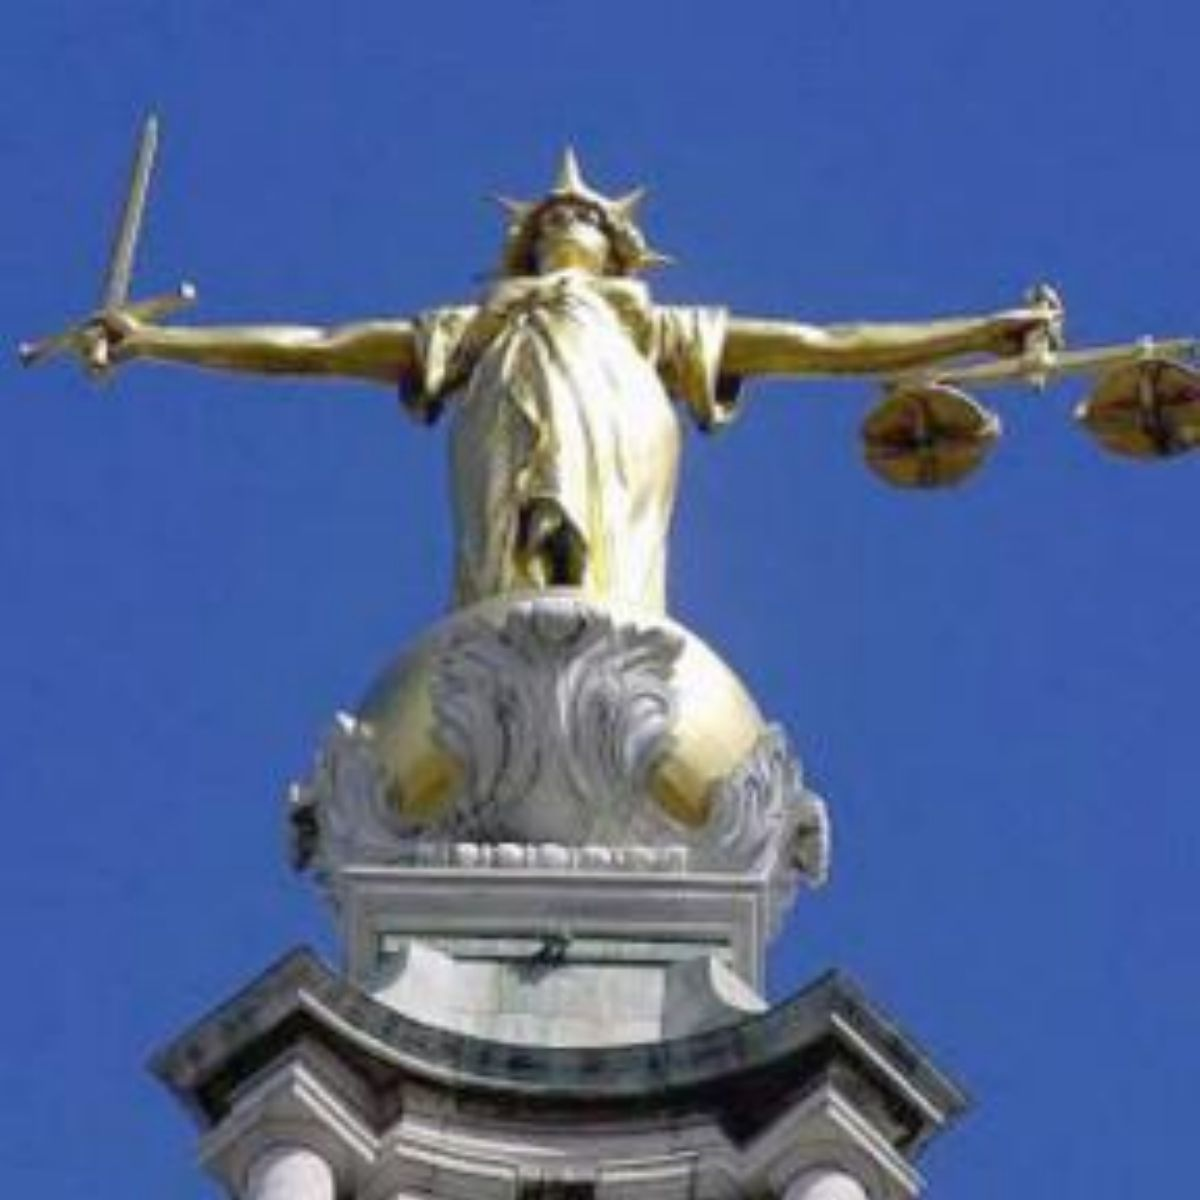 Trio set for court over March for England disorder